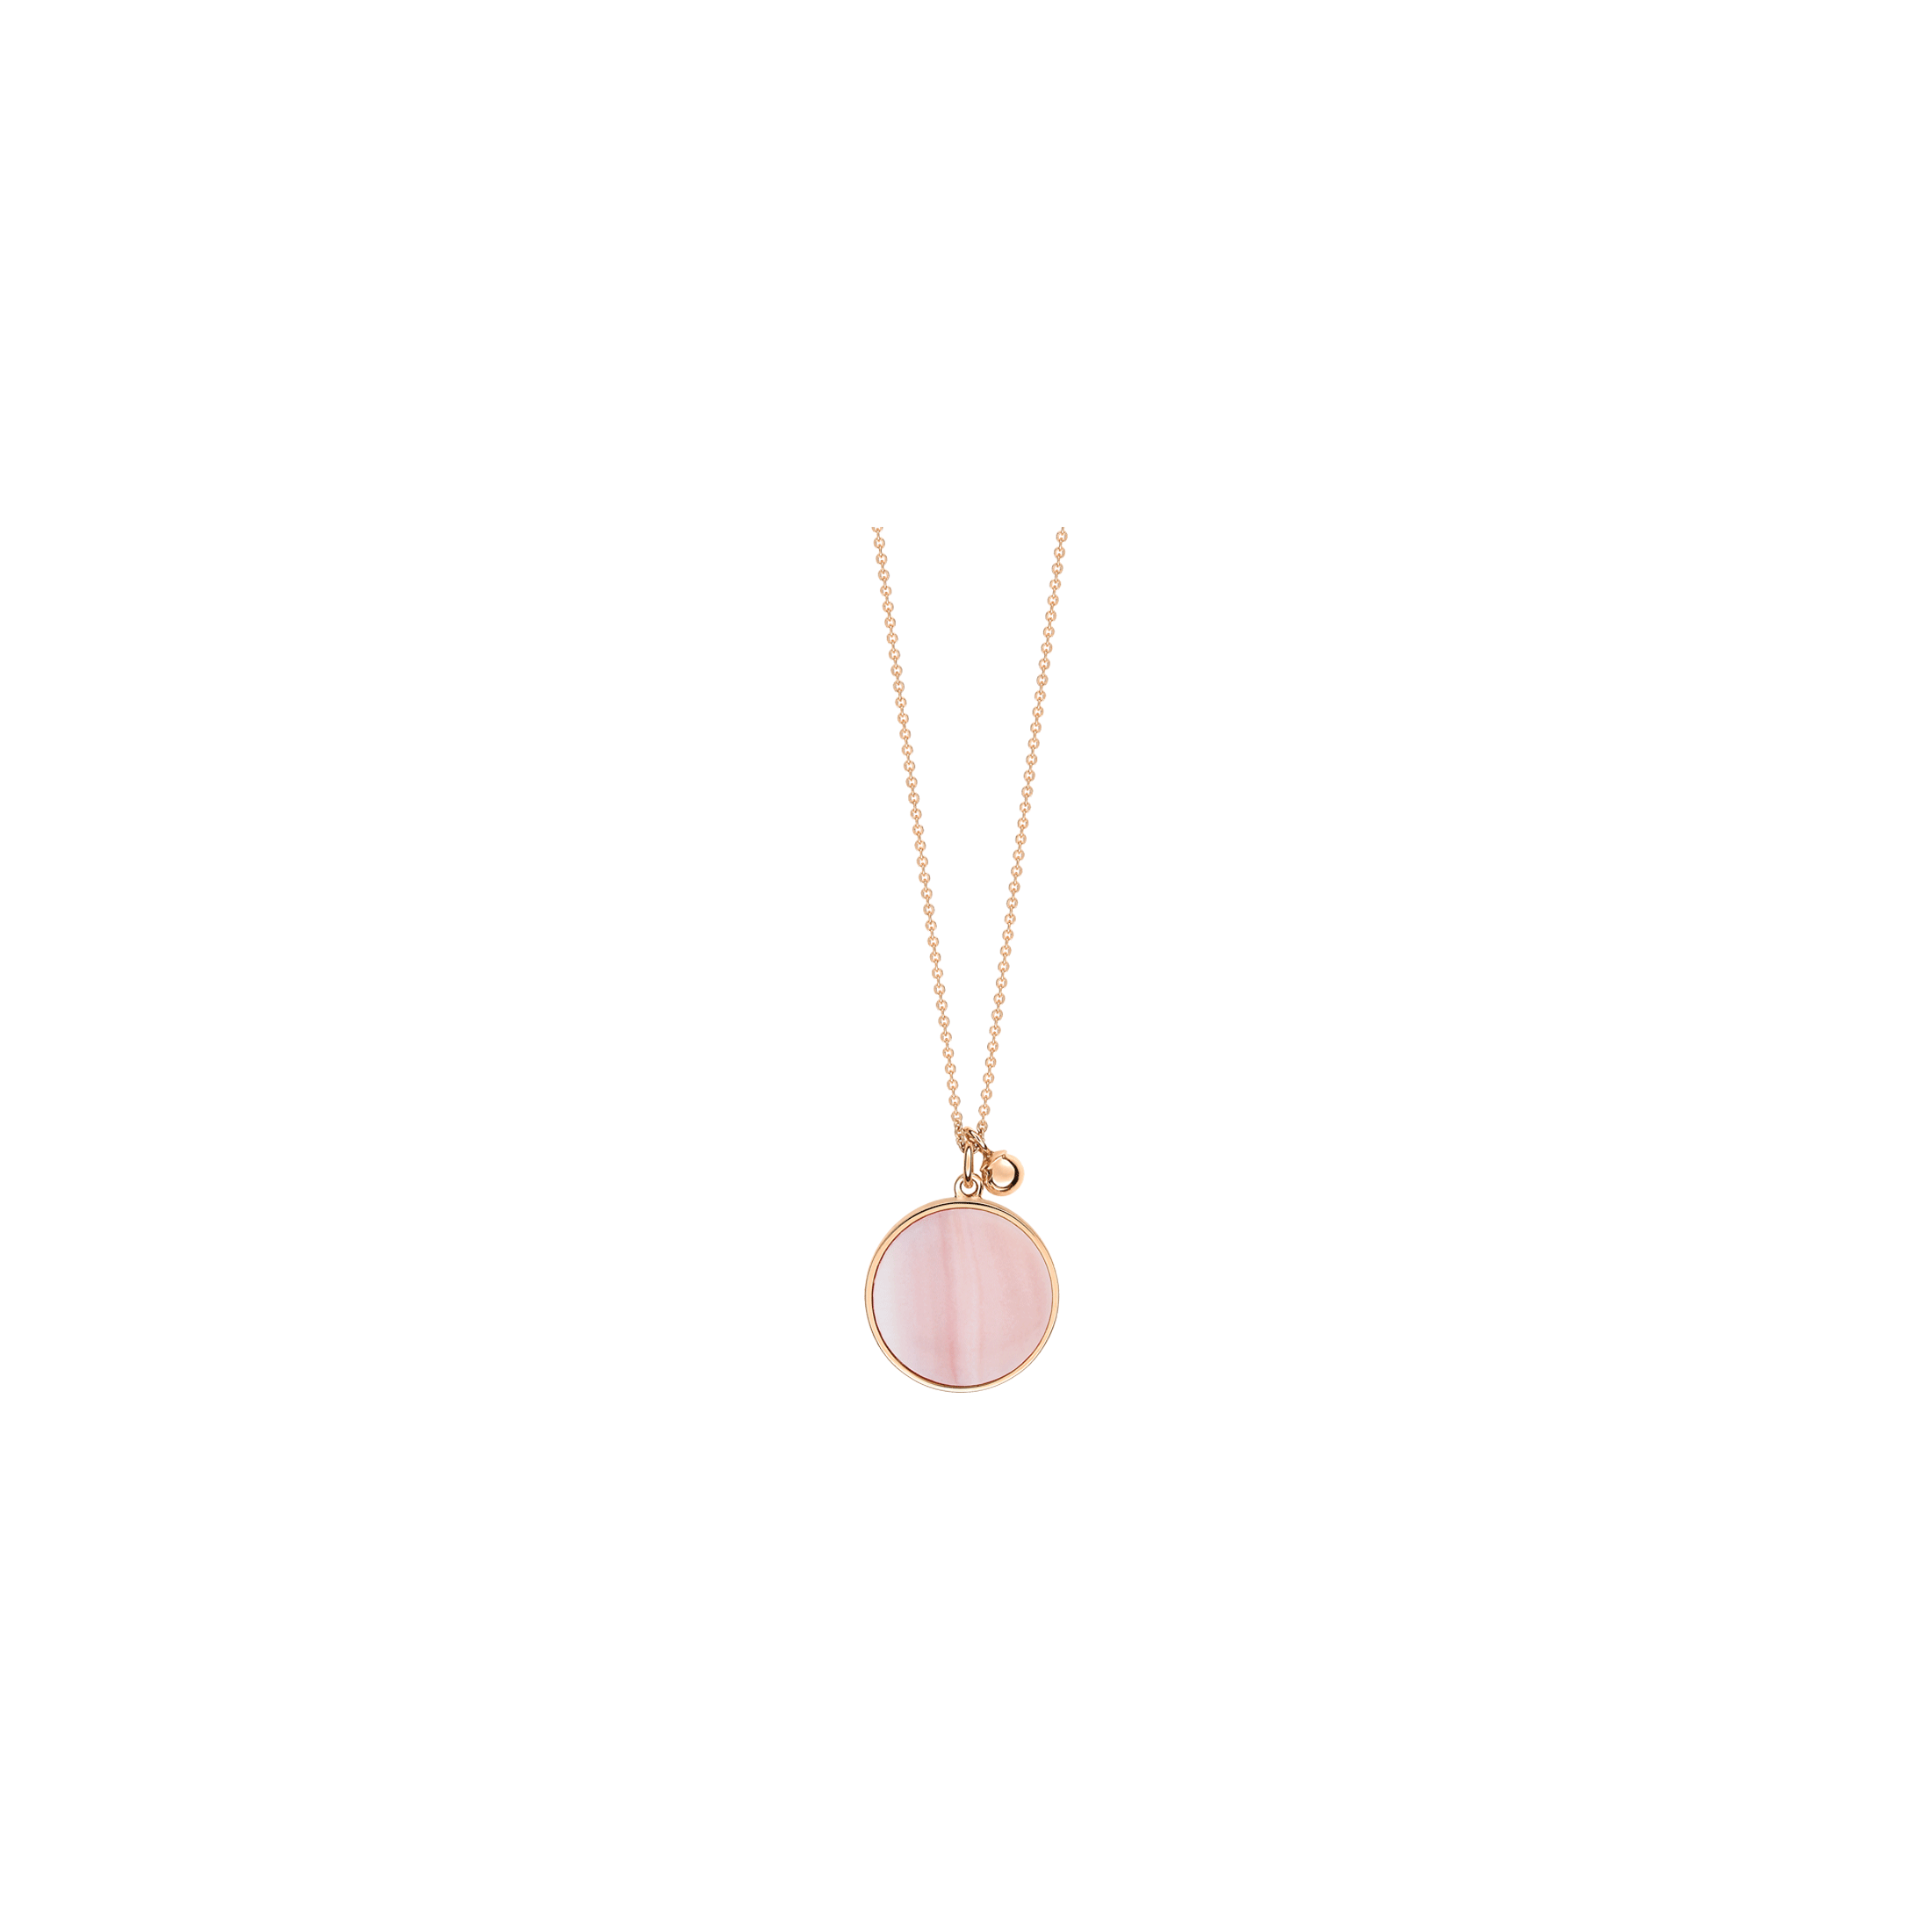 Collier Ginette Ny Ever on chain en or rose et nacre rose